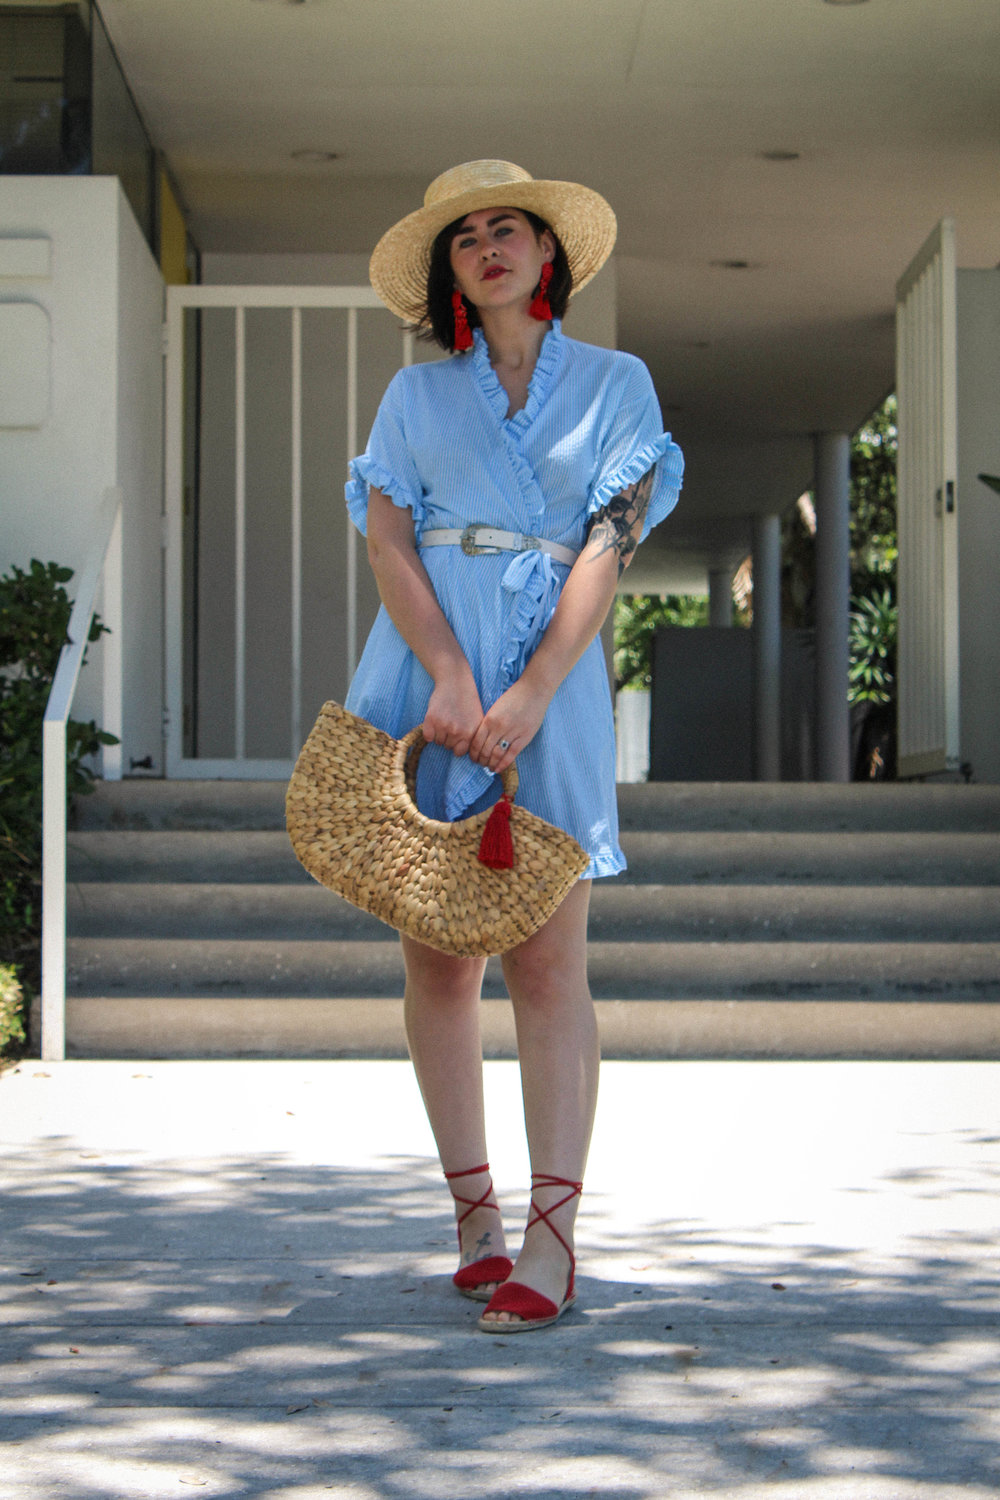 vacationdress-7.jpg